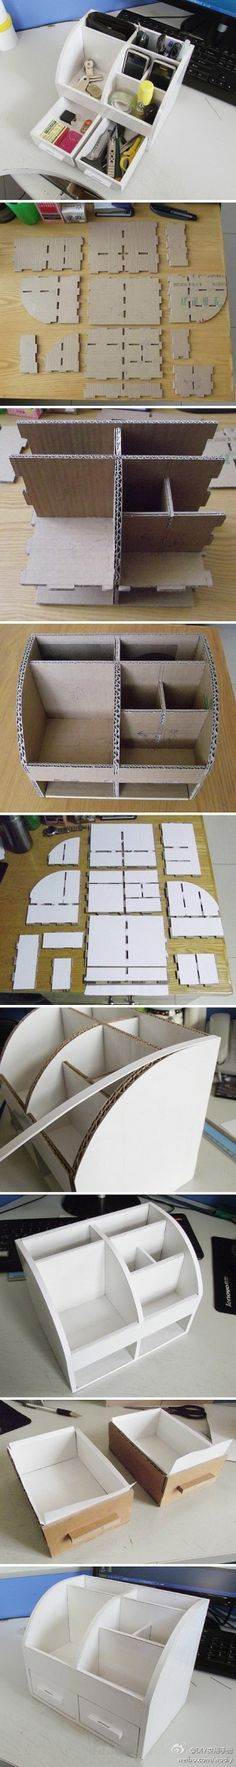 Cardboard stuff organizer DIY - photo TUTORIAL